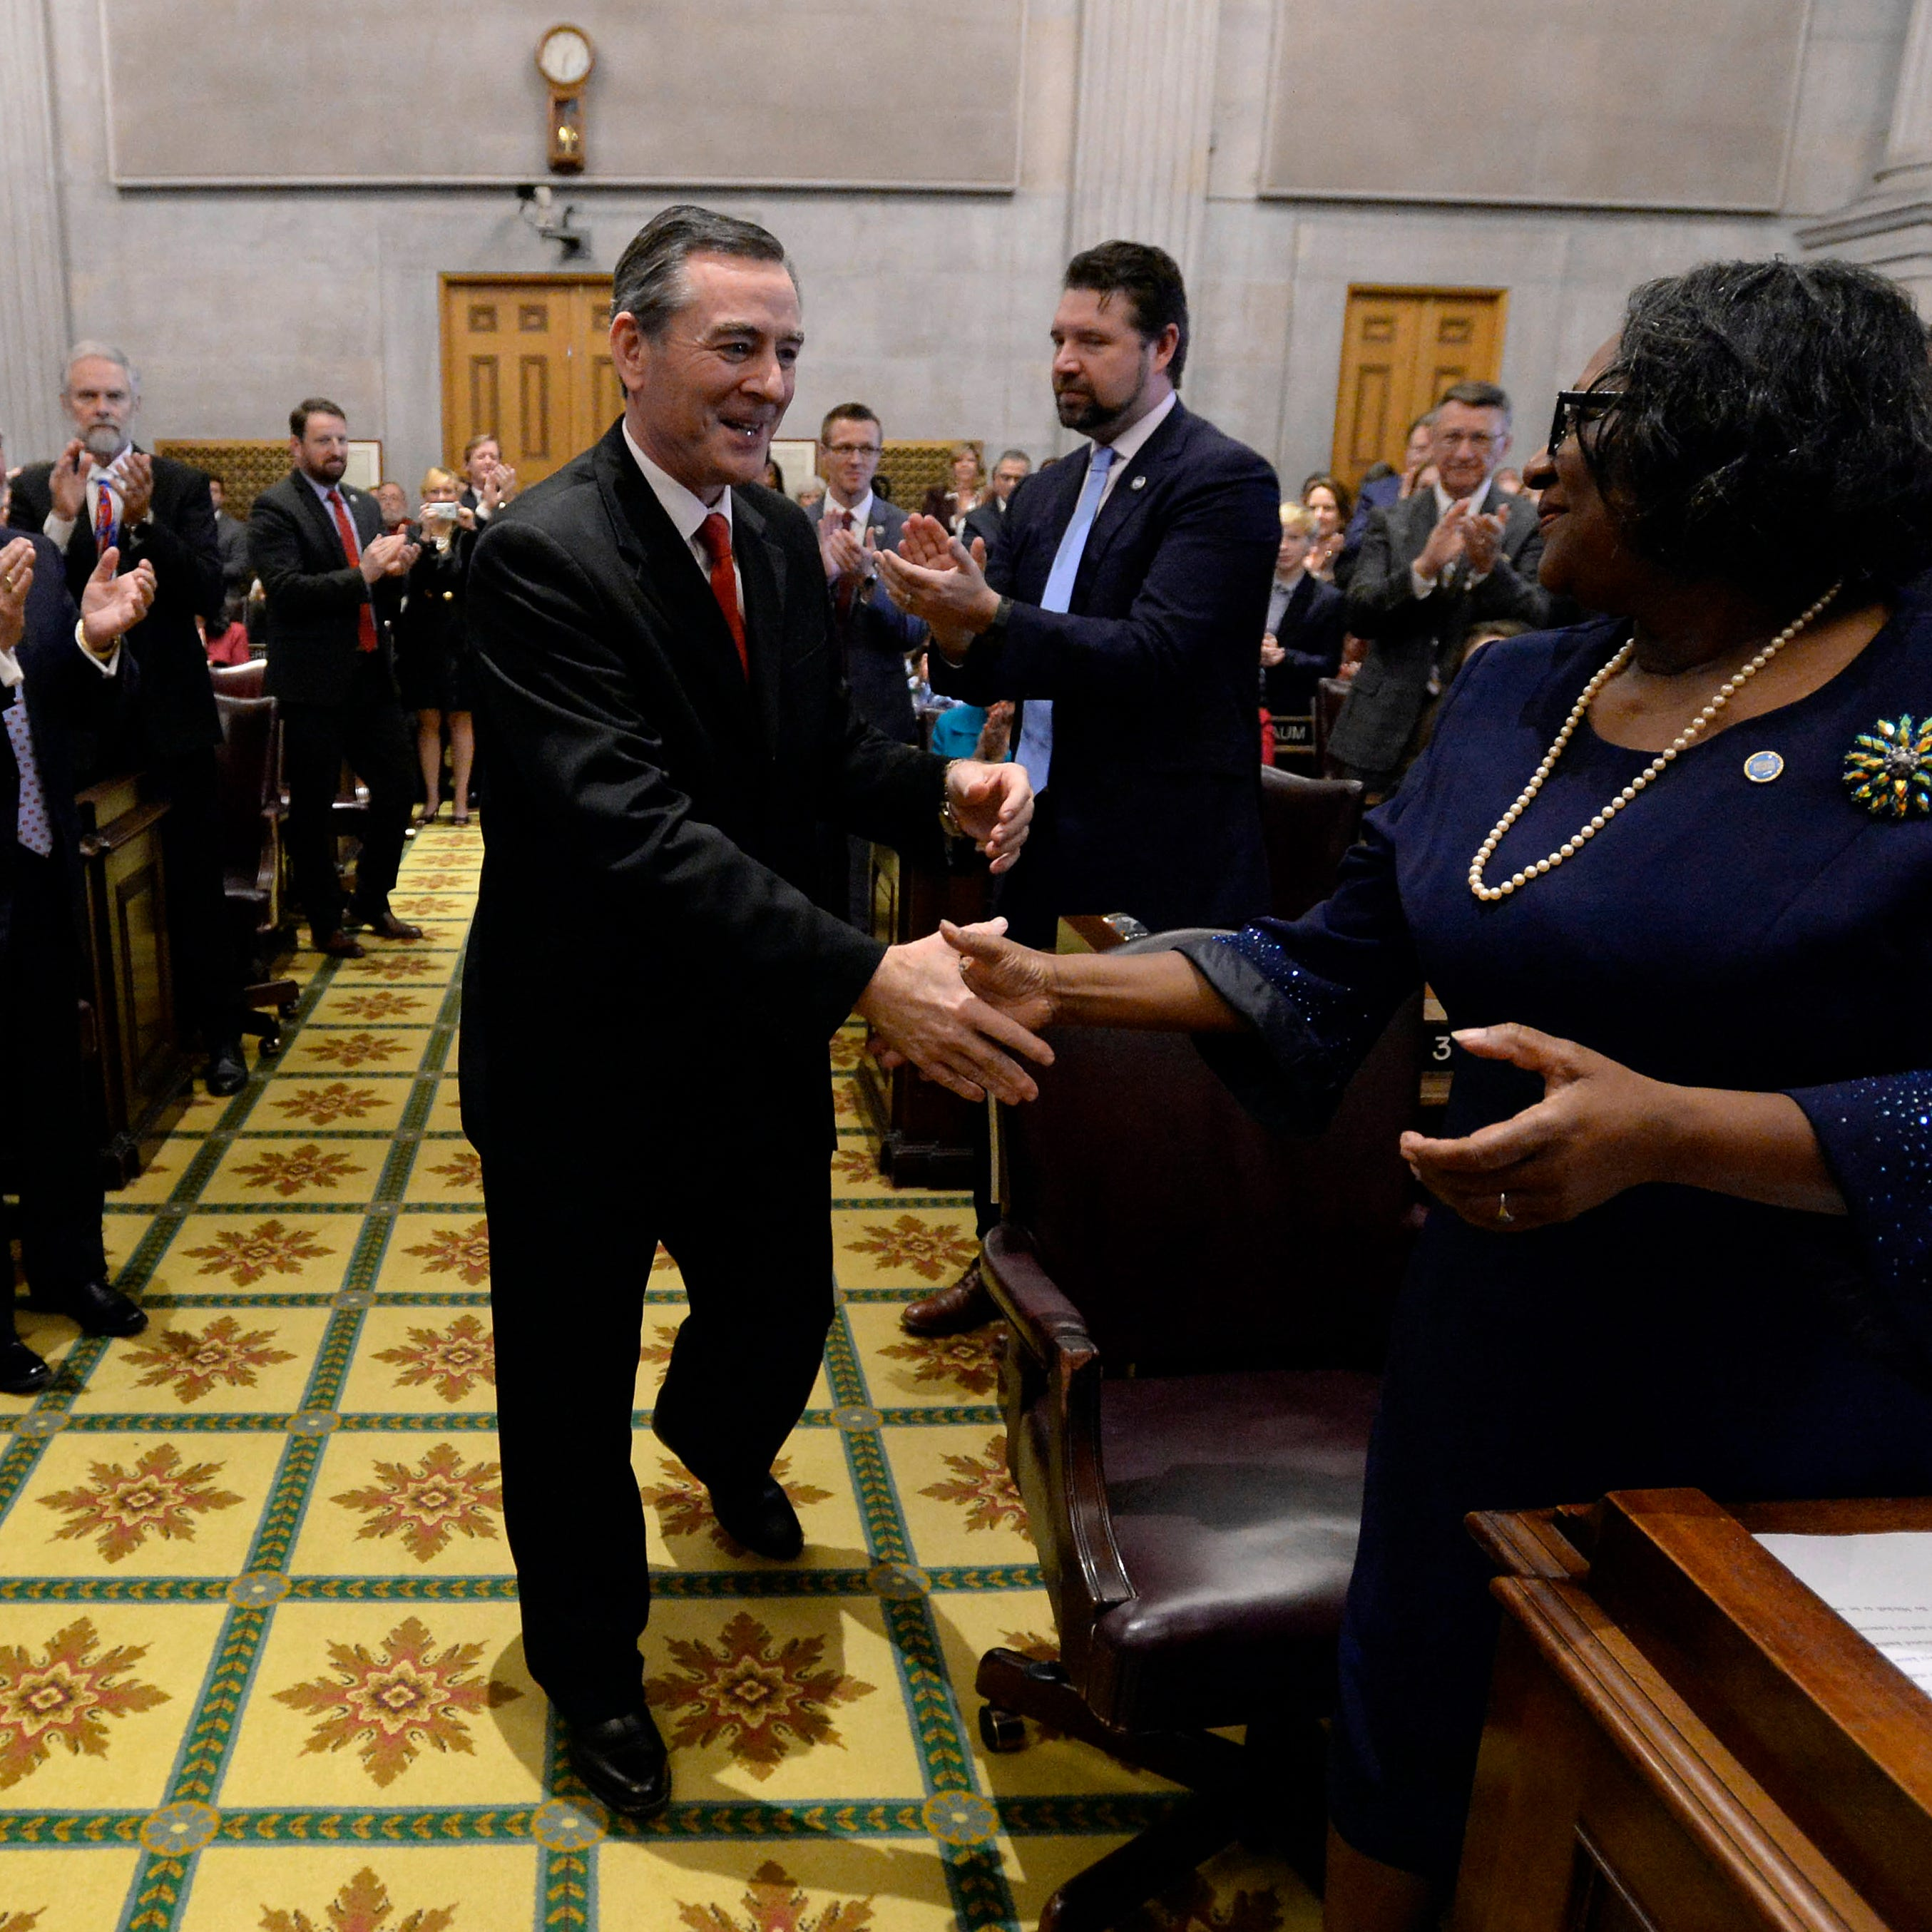 House Republicans are meeting to discuss Speaker Glen Casada. Here's what could happen next.